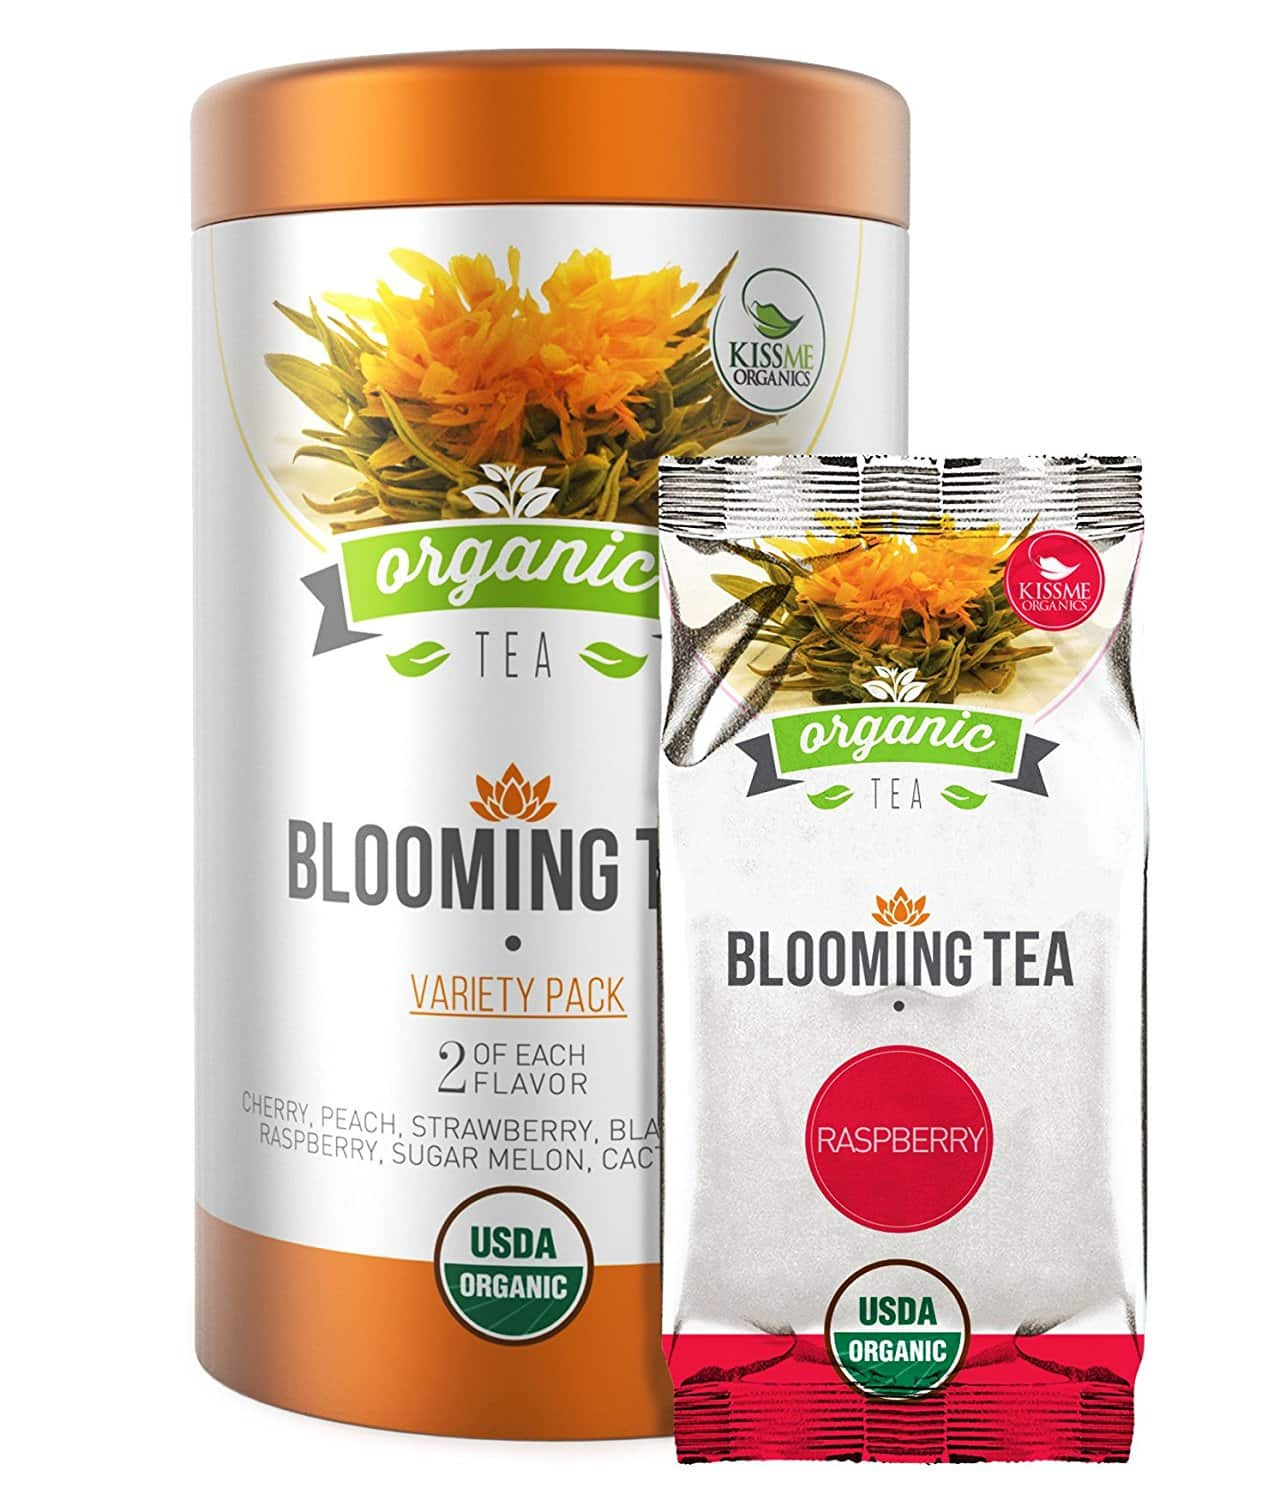 Kiss Me Organics 14 Count Variety Flowering Tea for $9.20 w/code  + free prime shipping